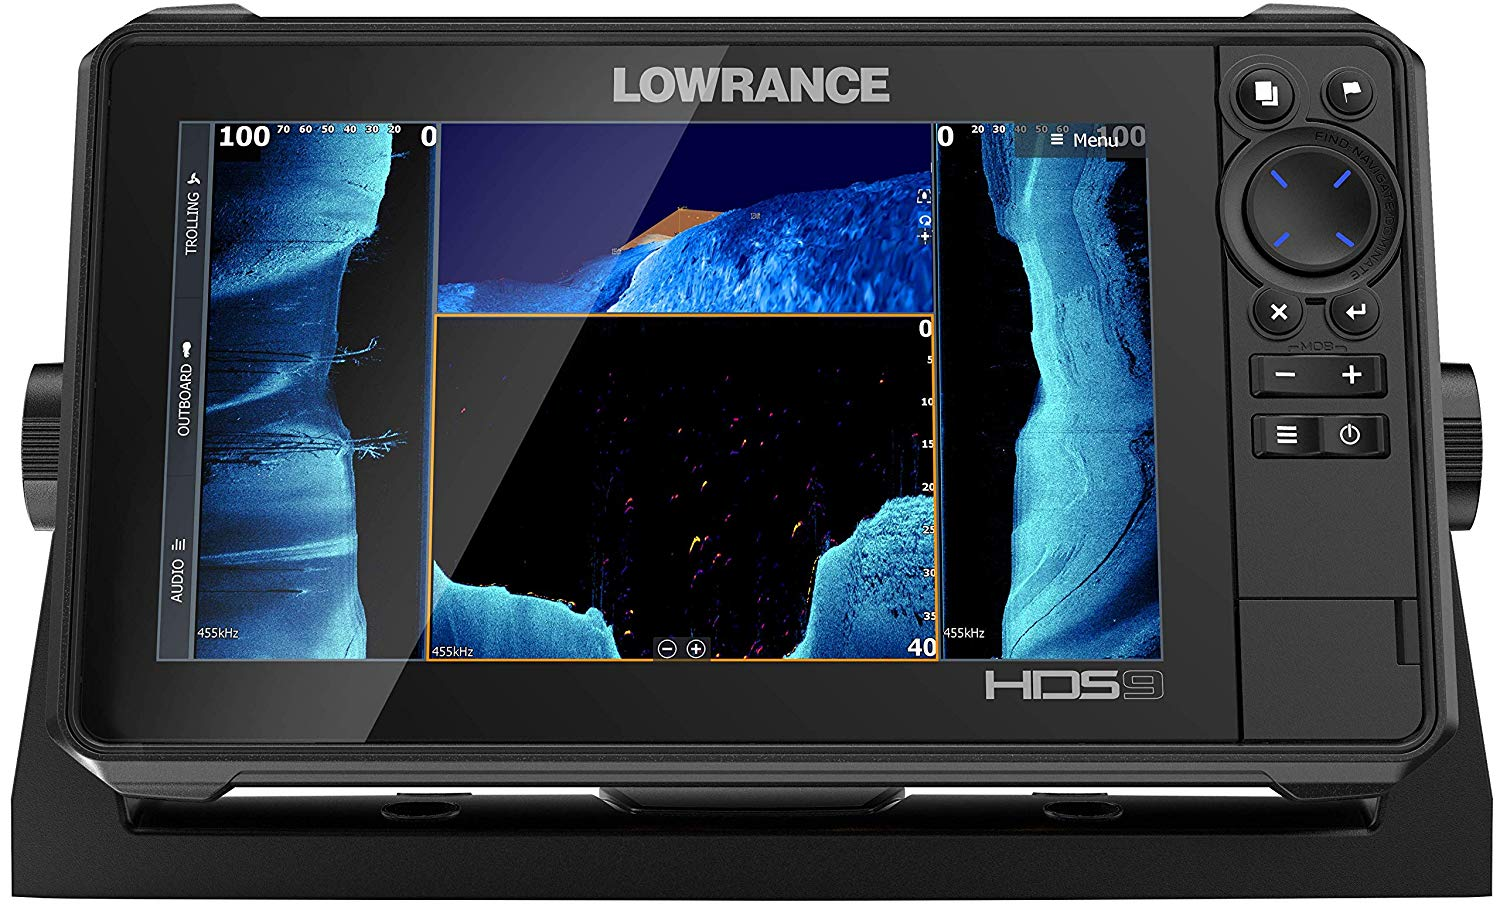 HDS 9 LIVE Fish Finder